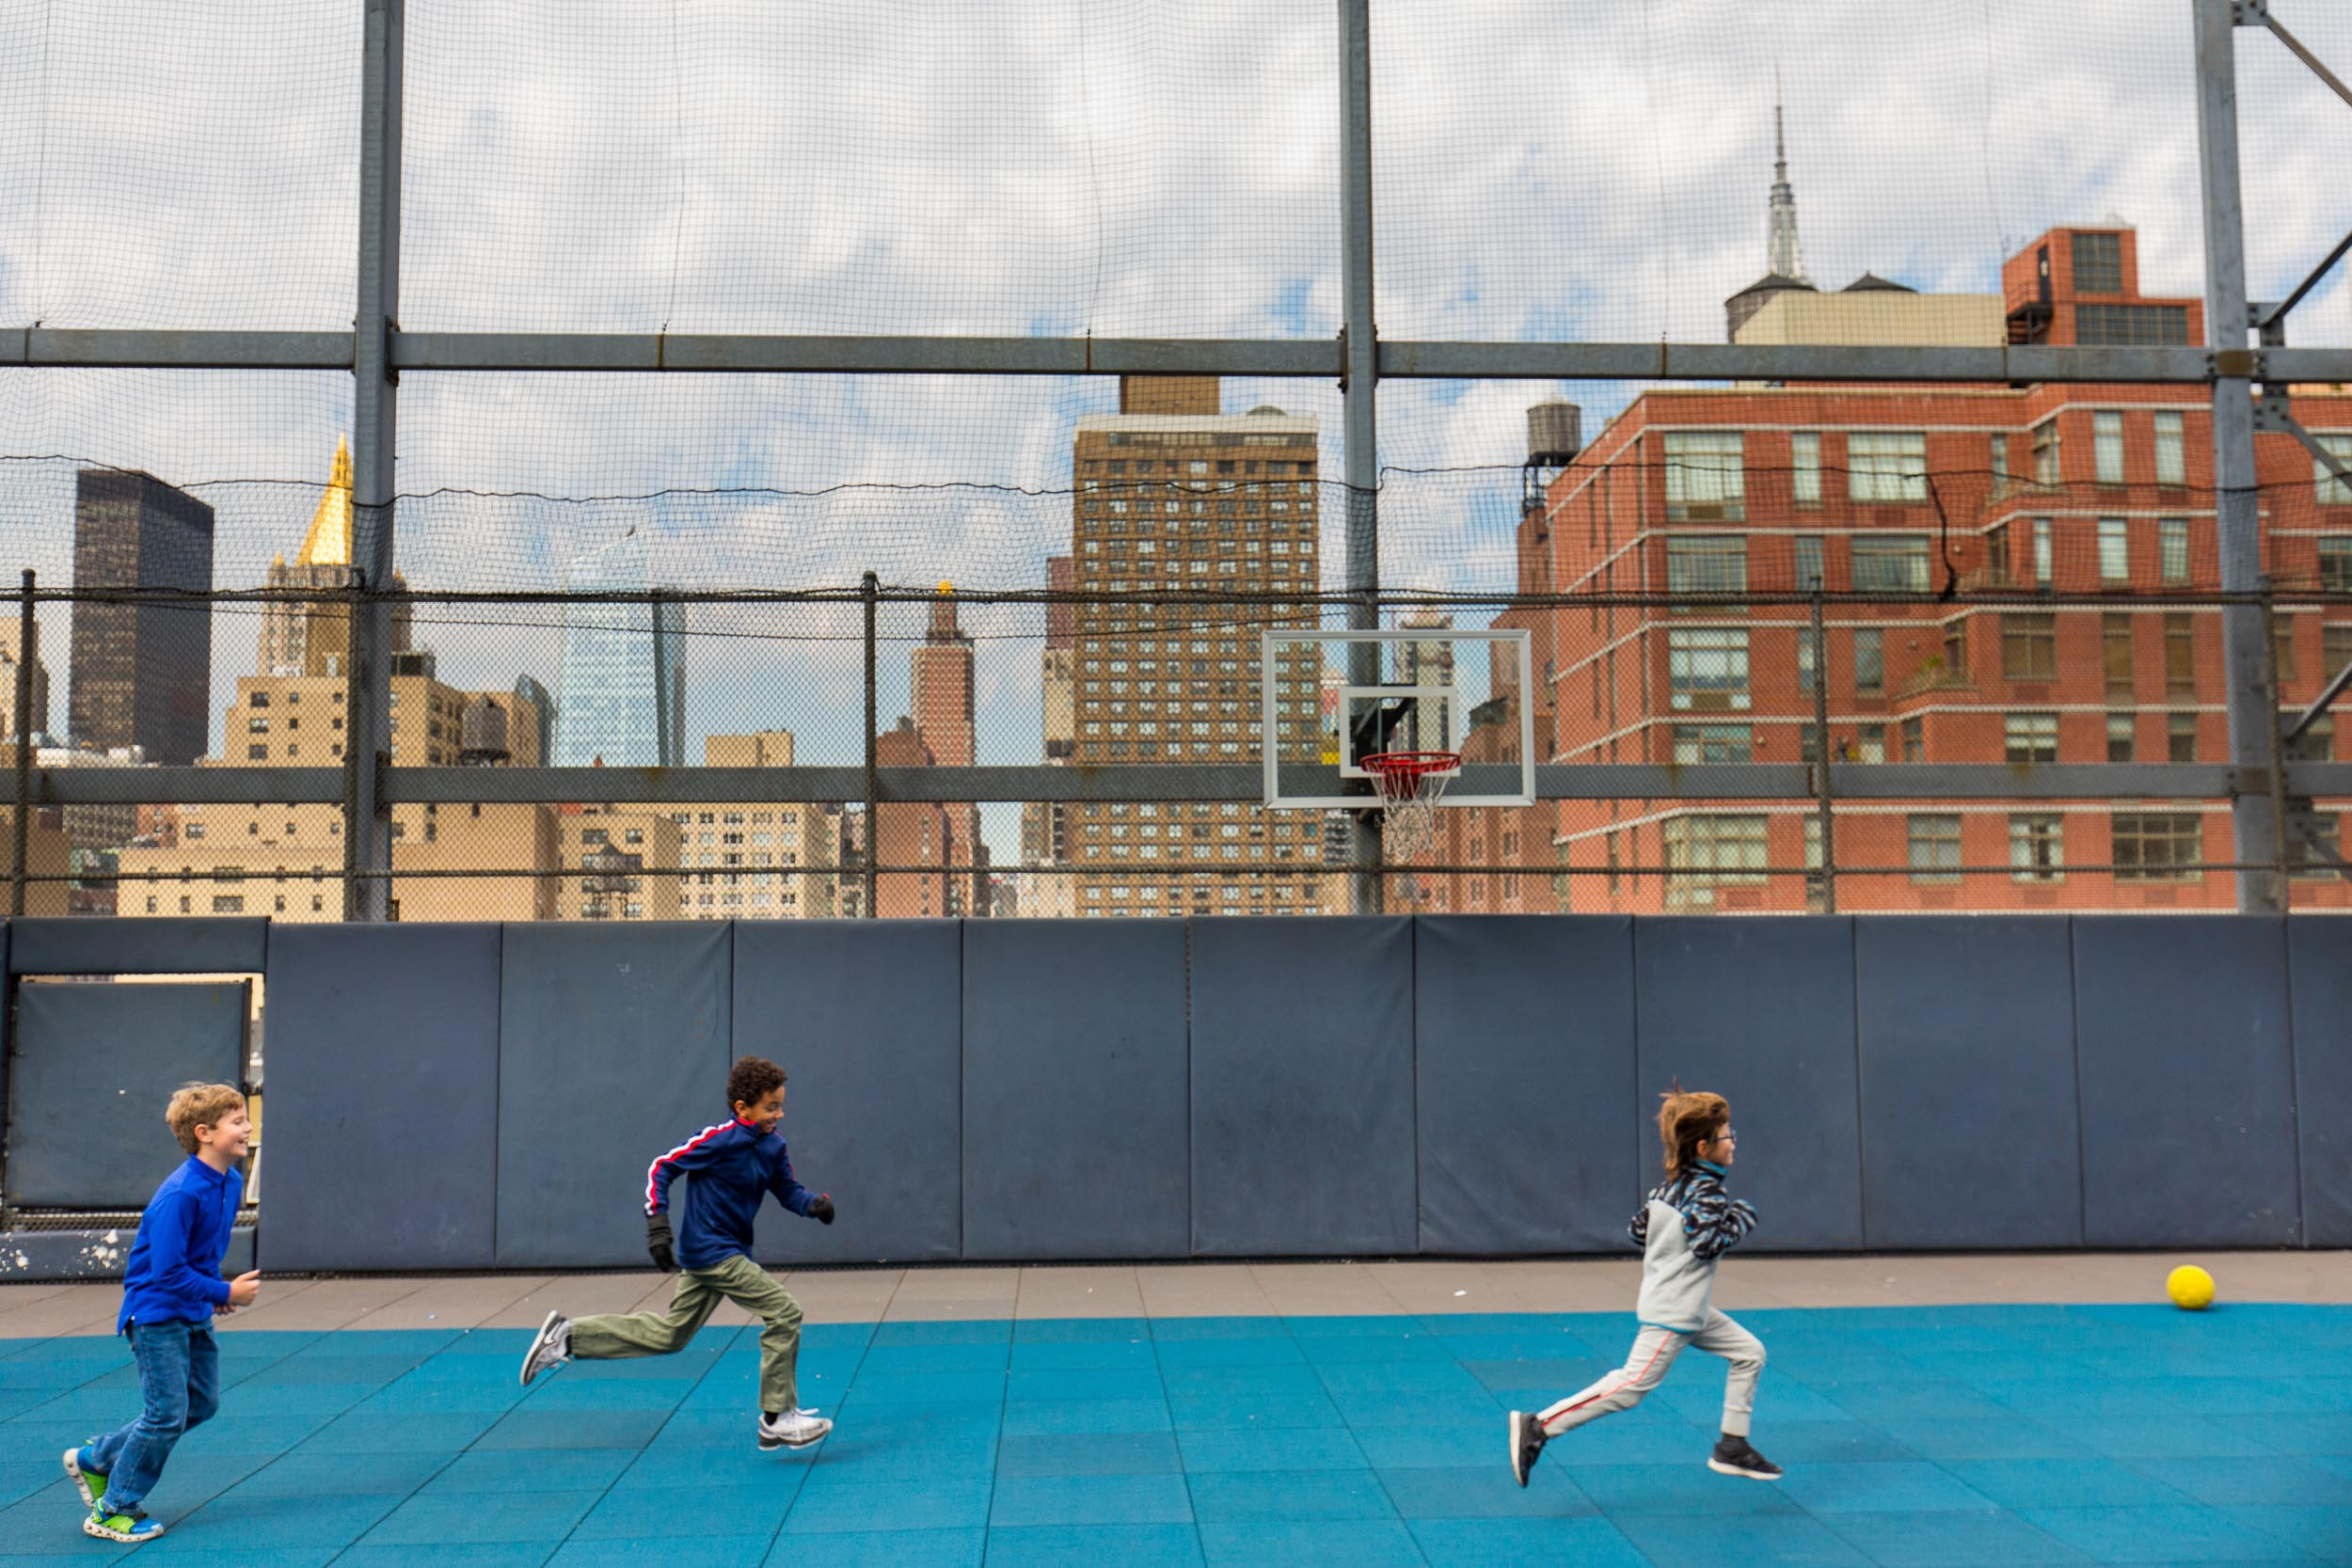 Churchill School New York rooftop recess Michael Branscom Photography.